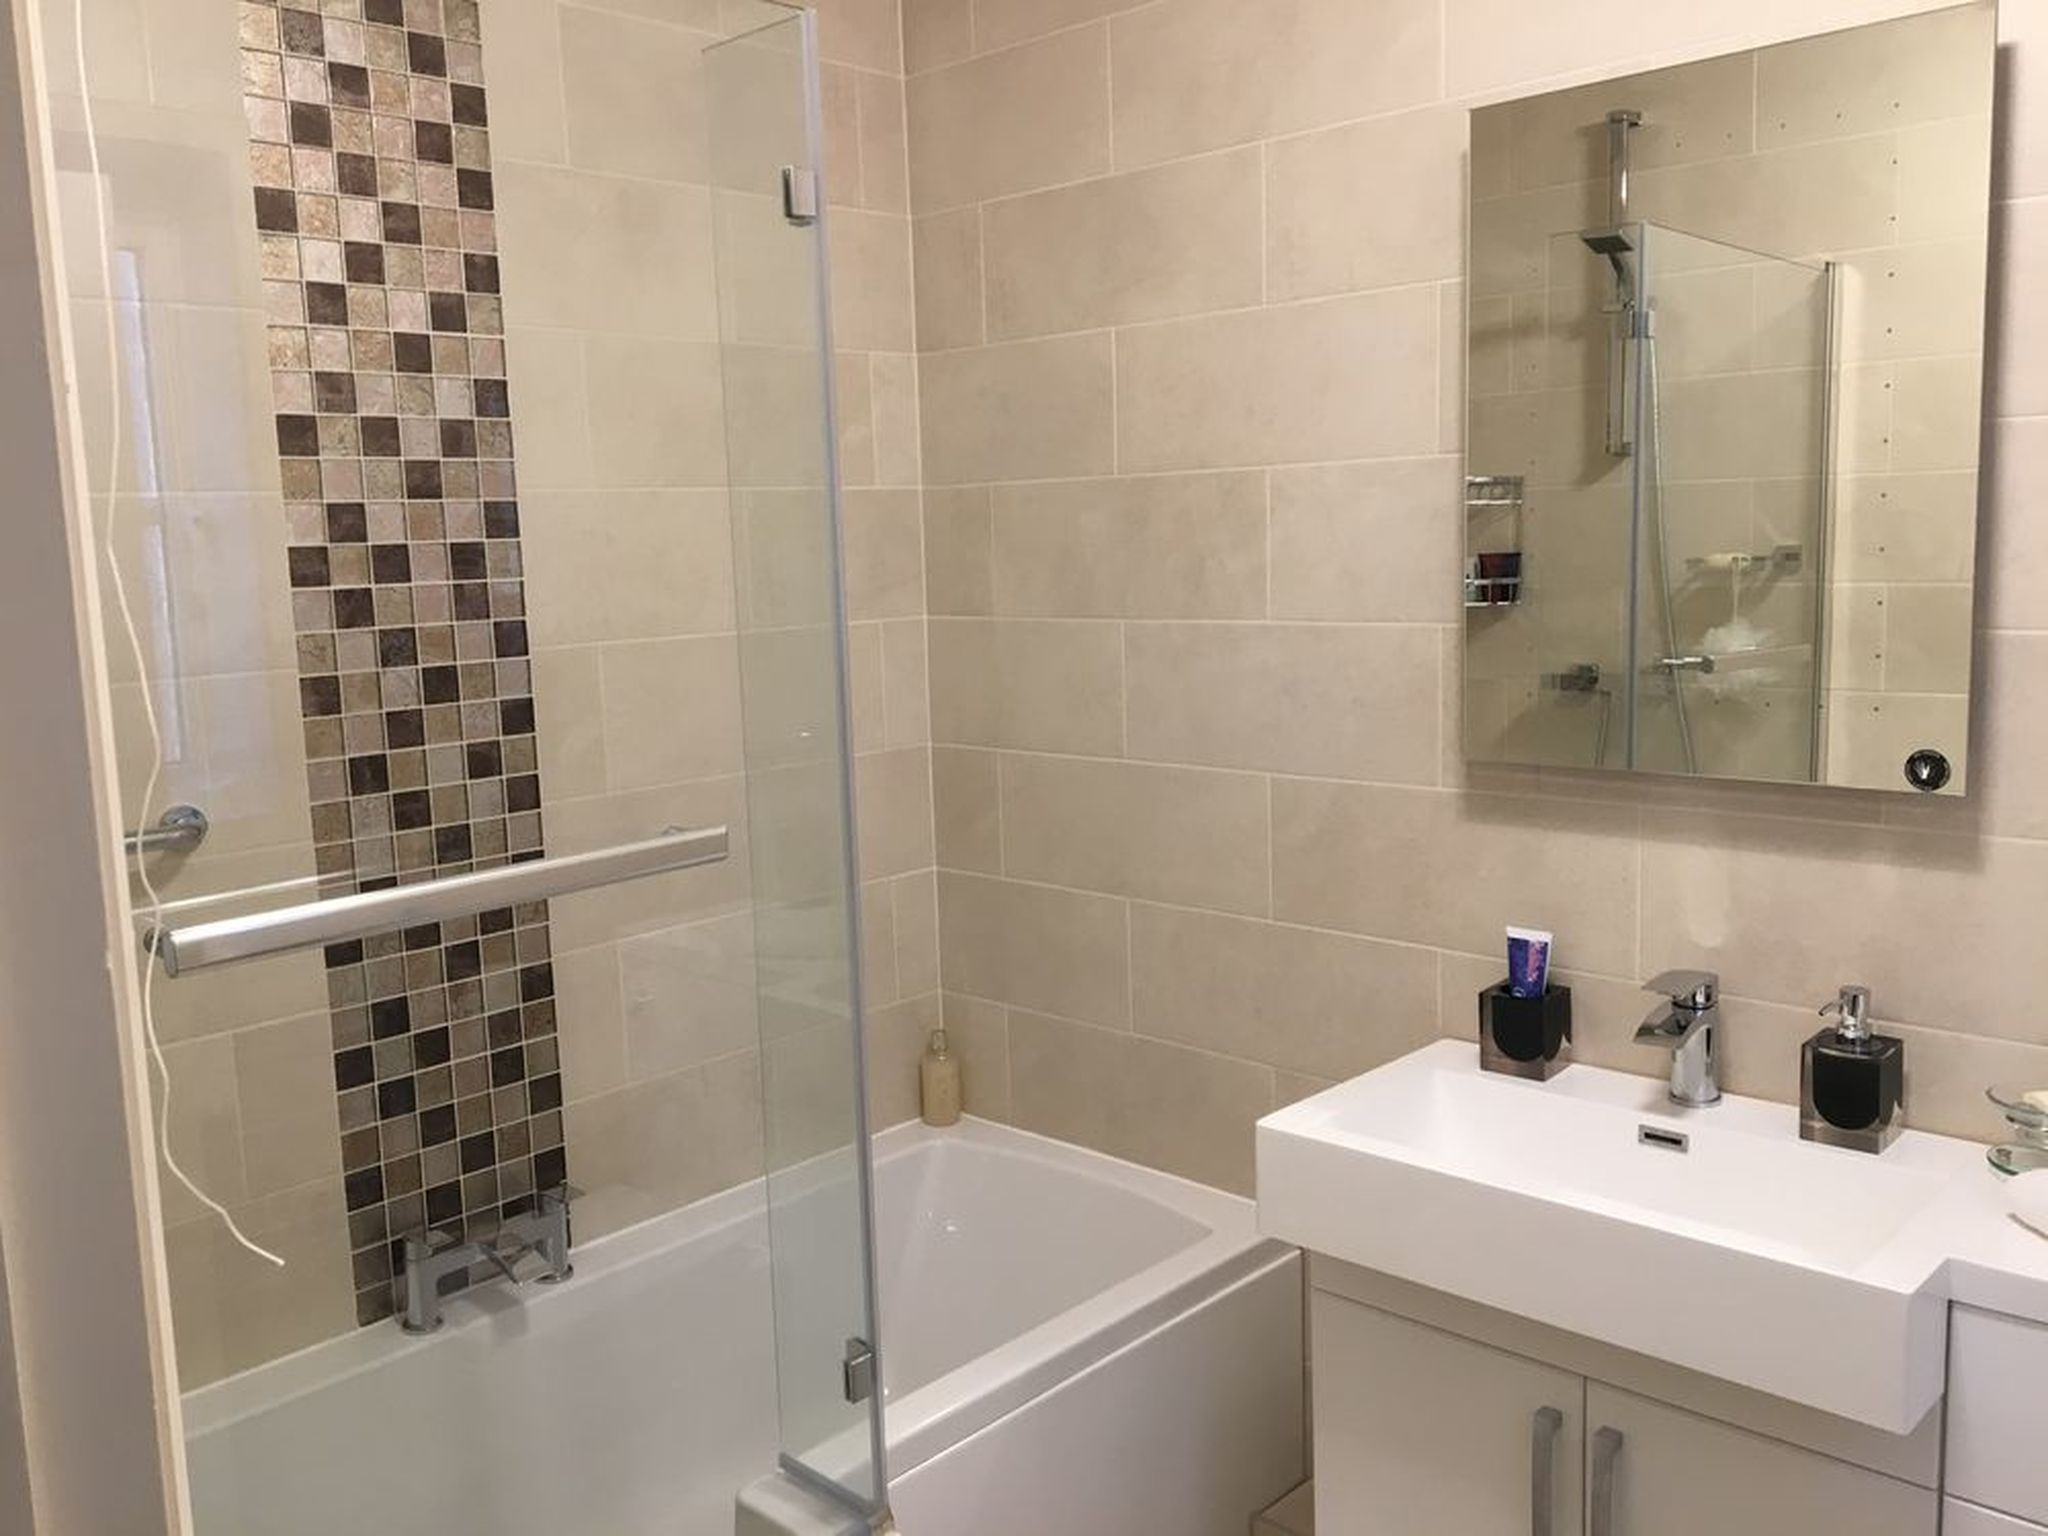 Refit bathroom - Job of the Year 2018 - COMPETITION CLOSED